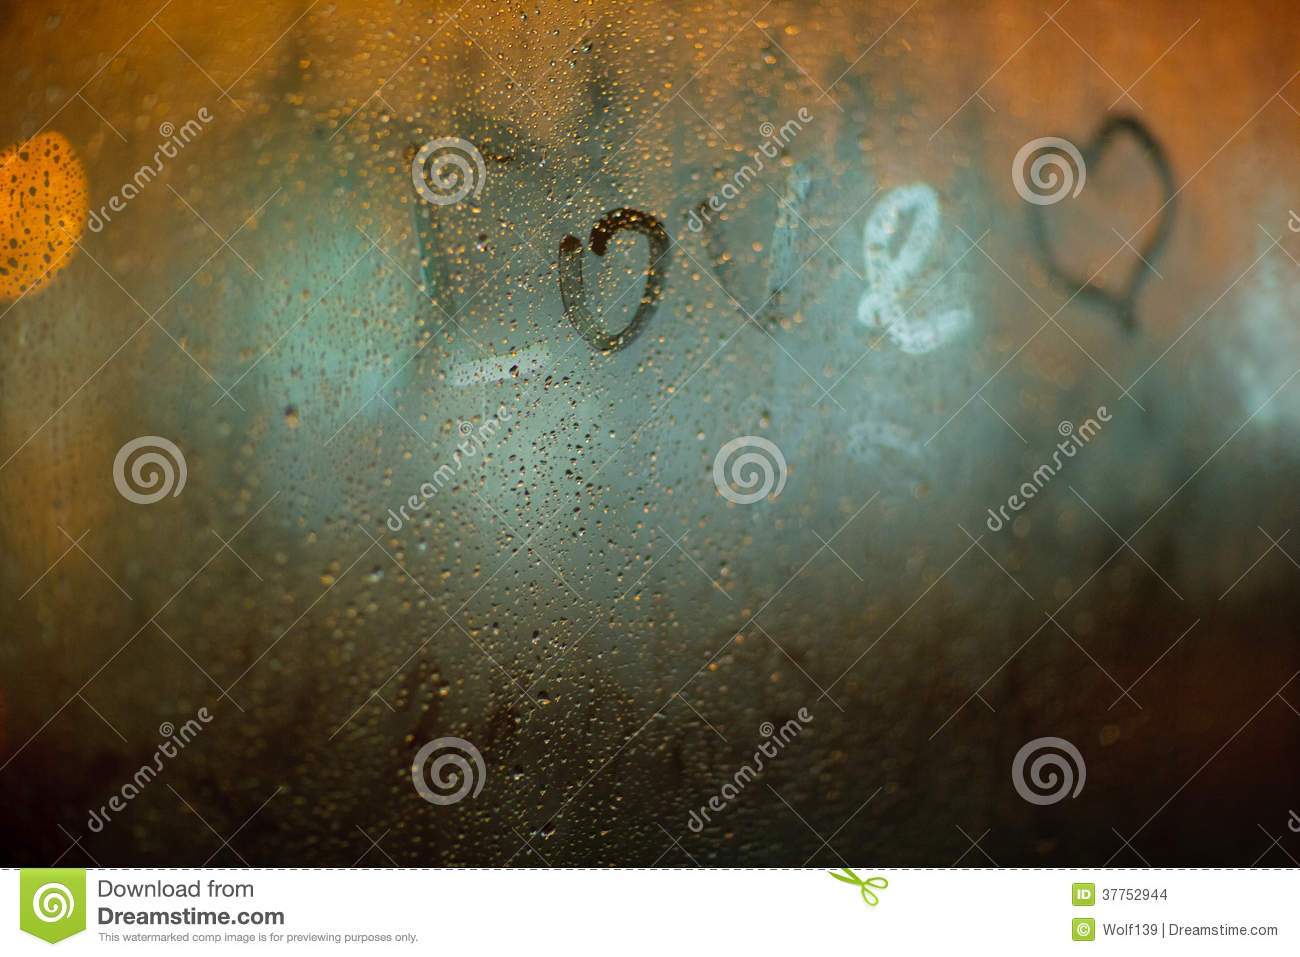 Download The Word Love On The Window In Rain Stock Photo Image Of Brightly